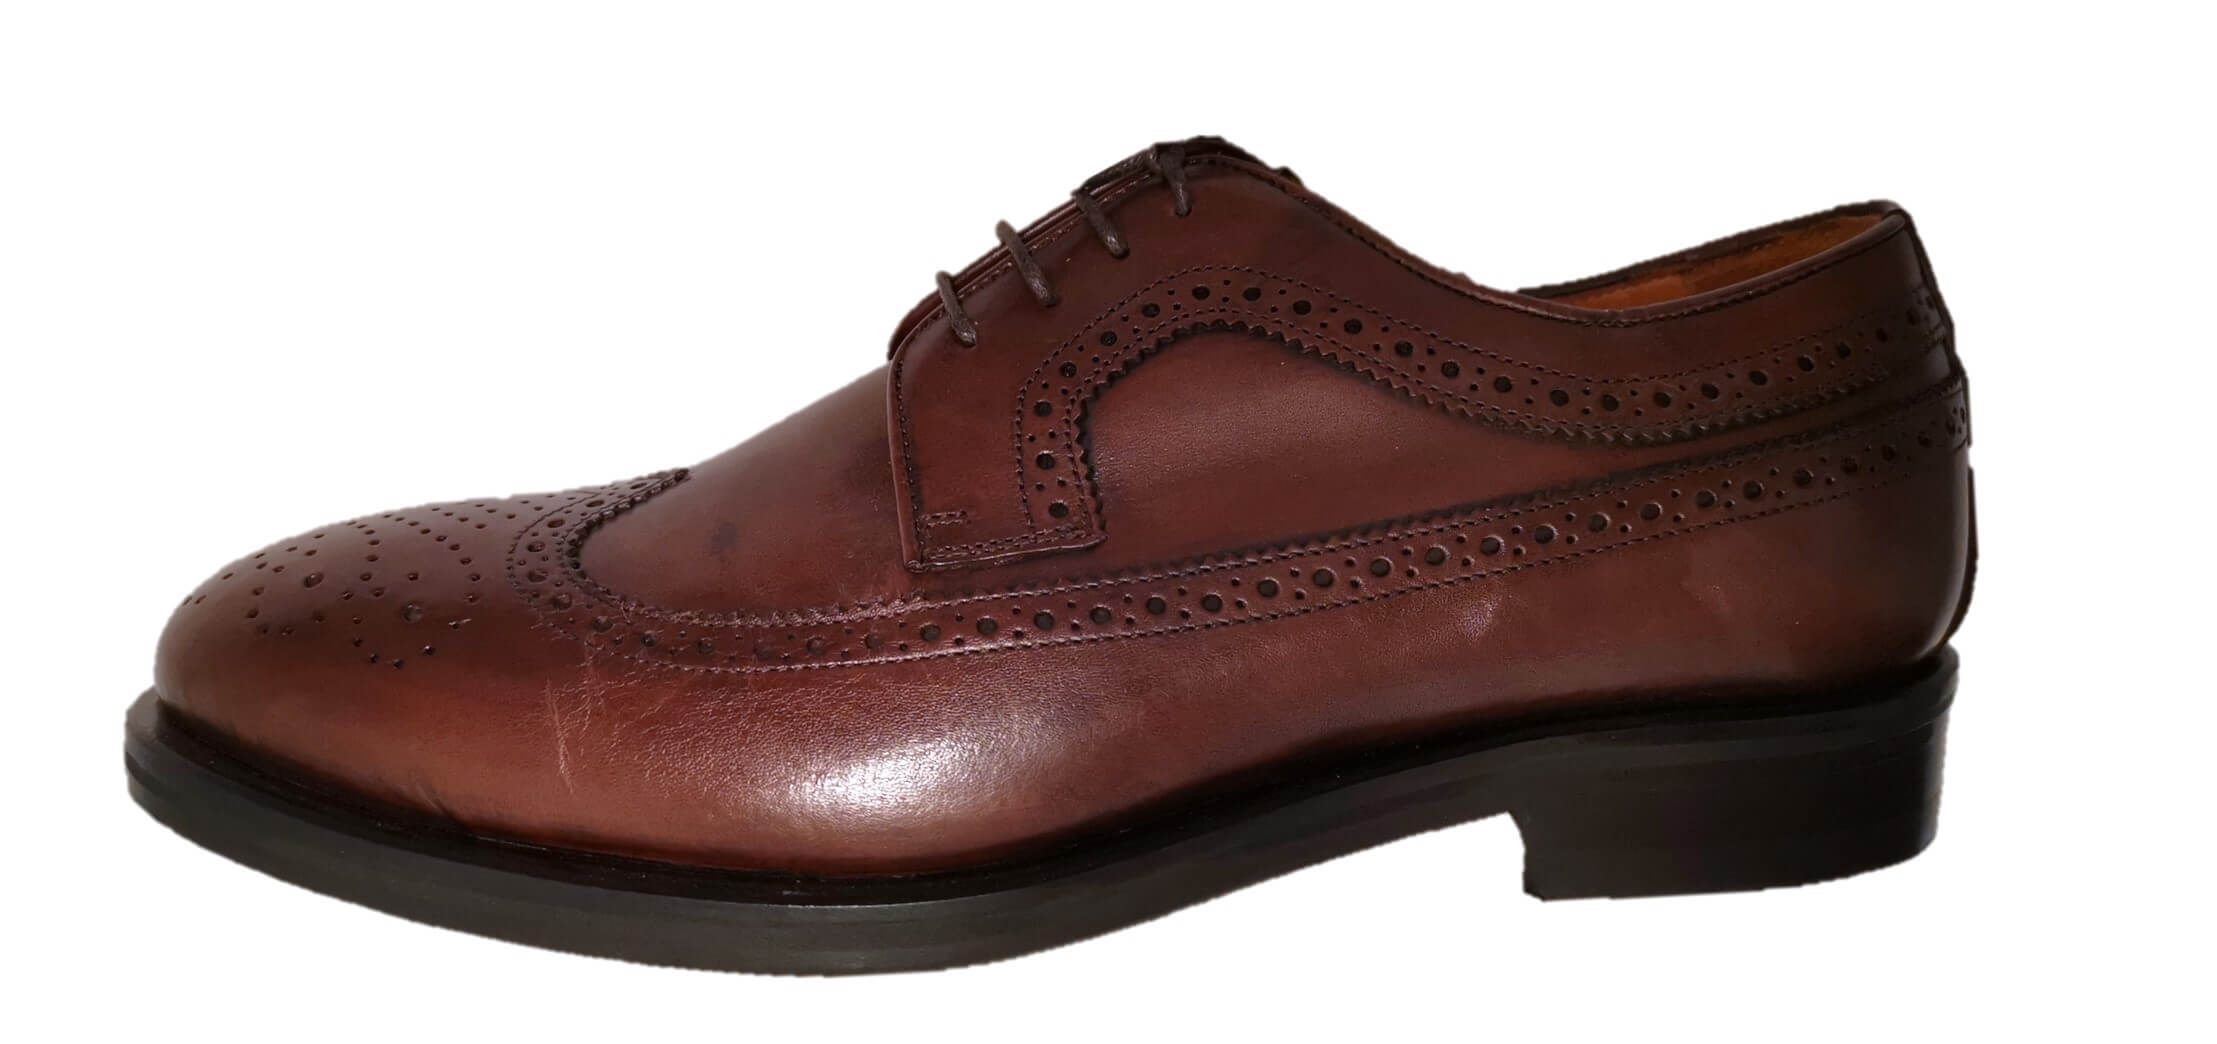 Brown wingtips